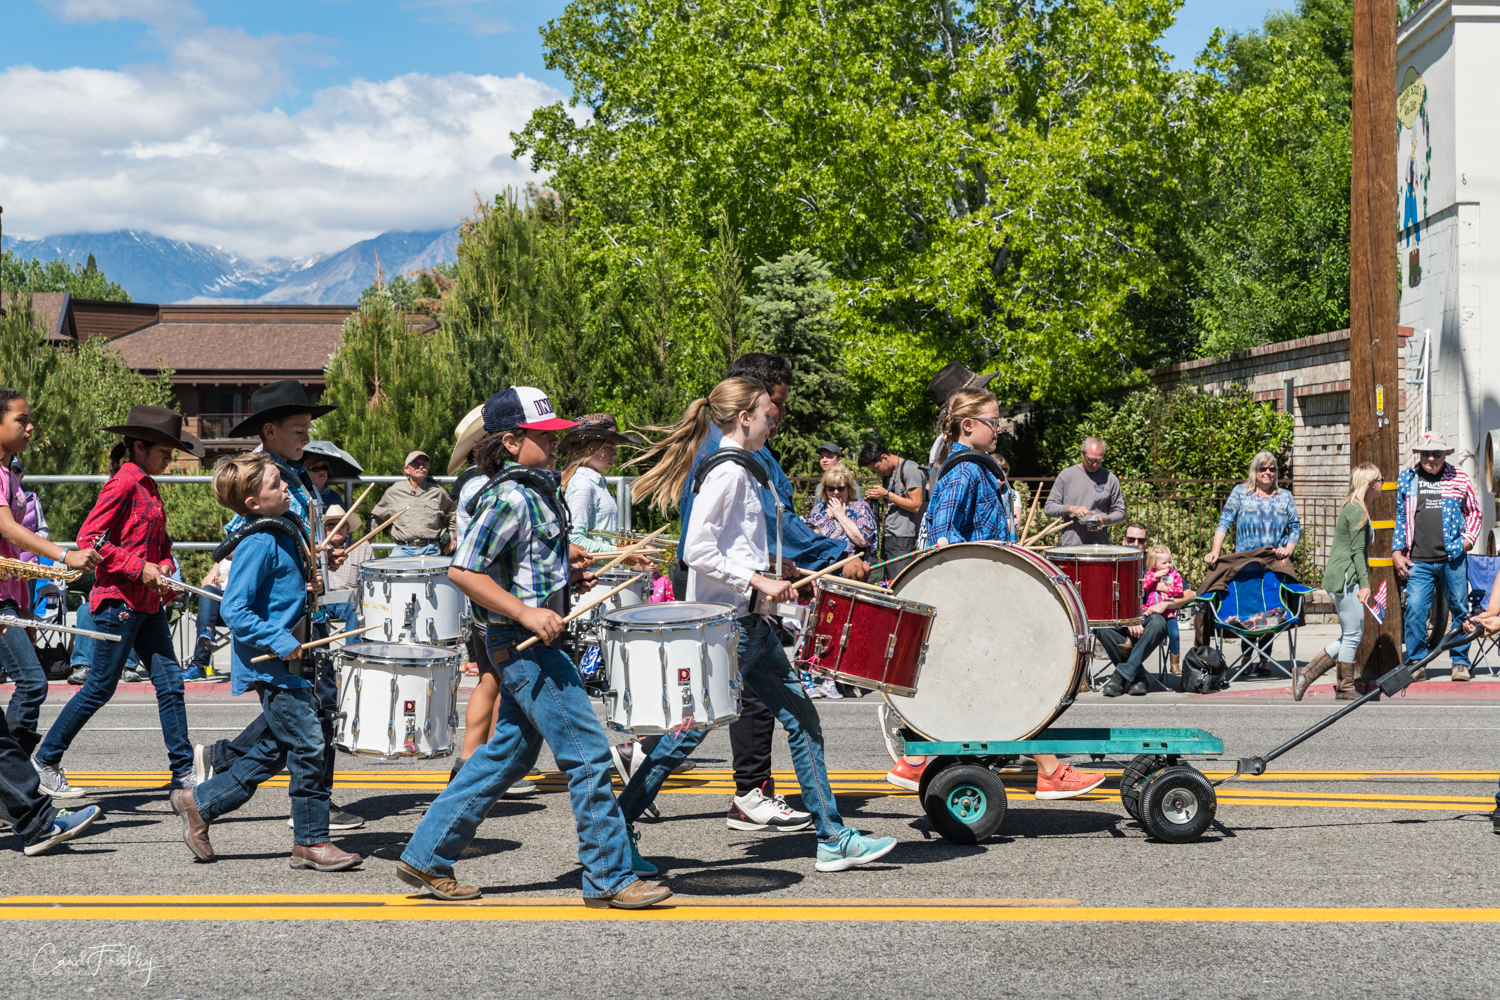 Fifth grade marching band marching in the Mule Days celebration in Bishop, CA